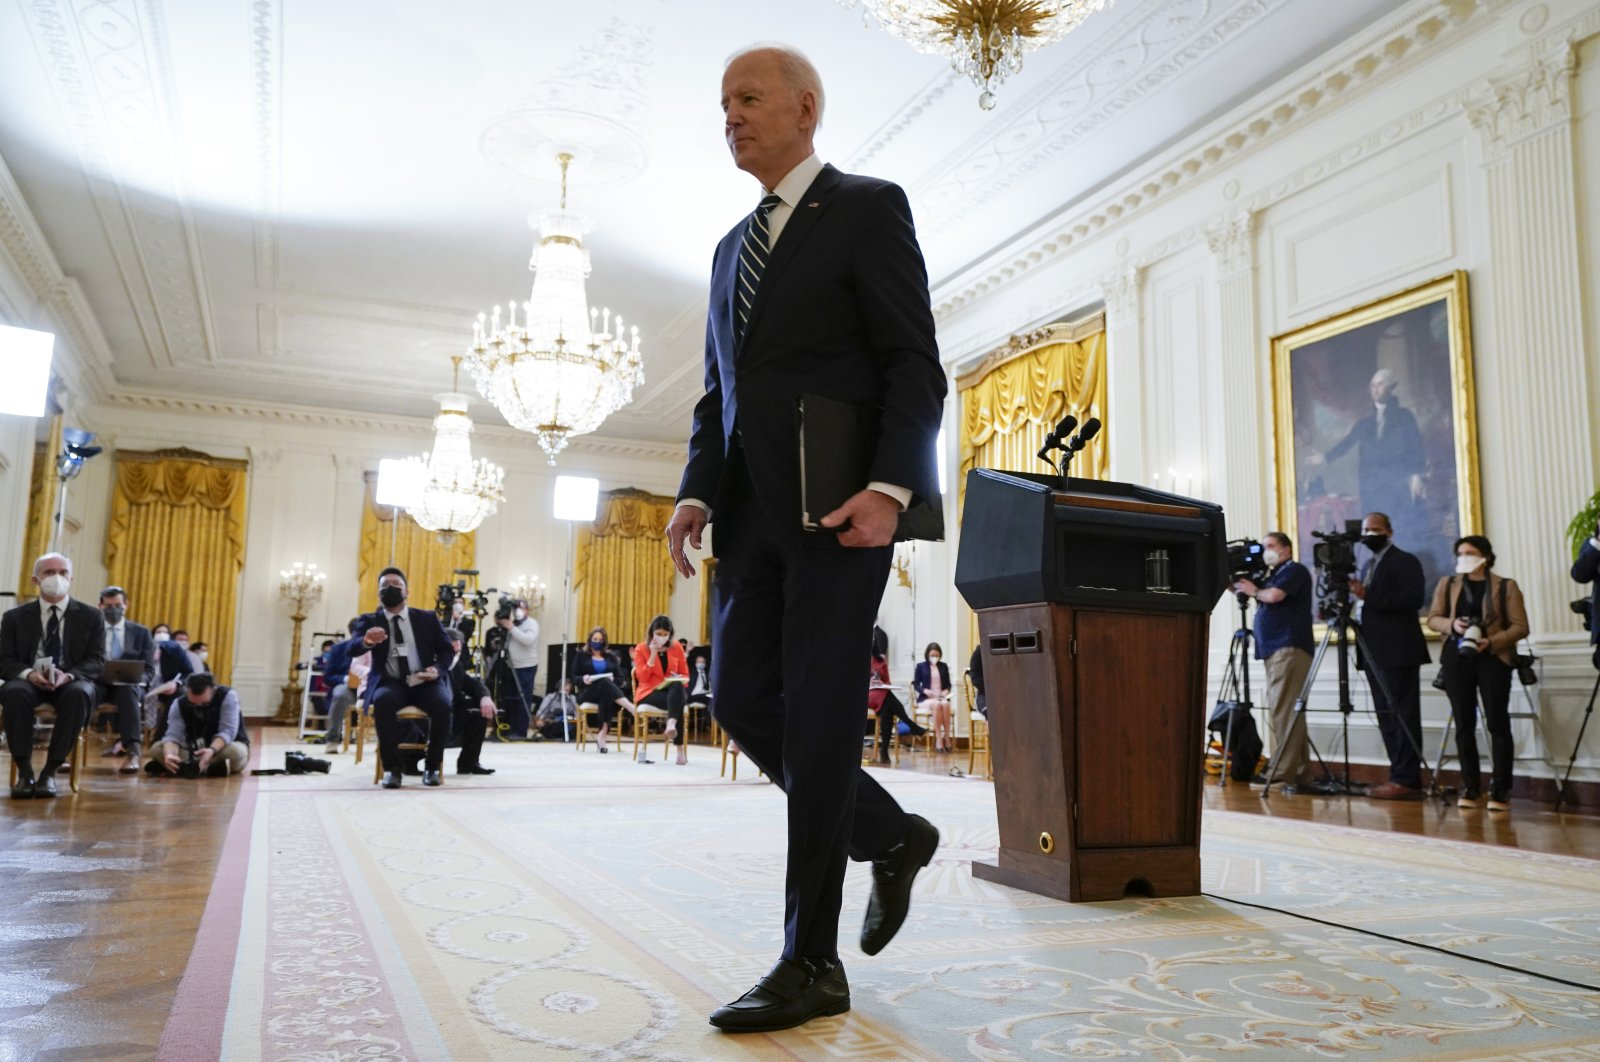 President Joe Biden leaves after speaking at a news conference in the East Room of the White House, Thursday, March 25, 2021, in Washington. (AP Photo)